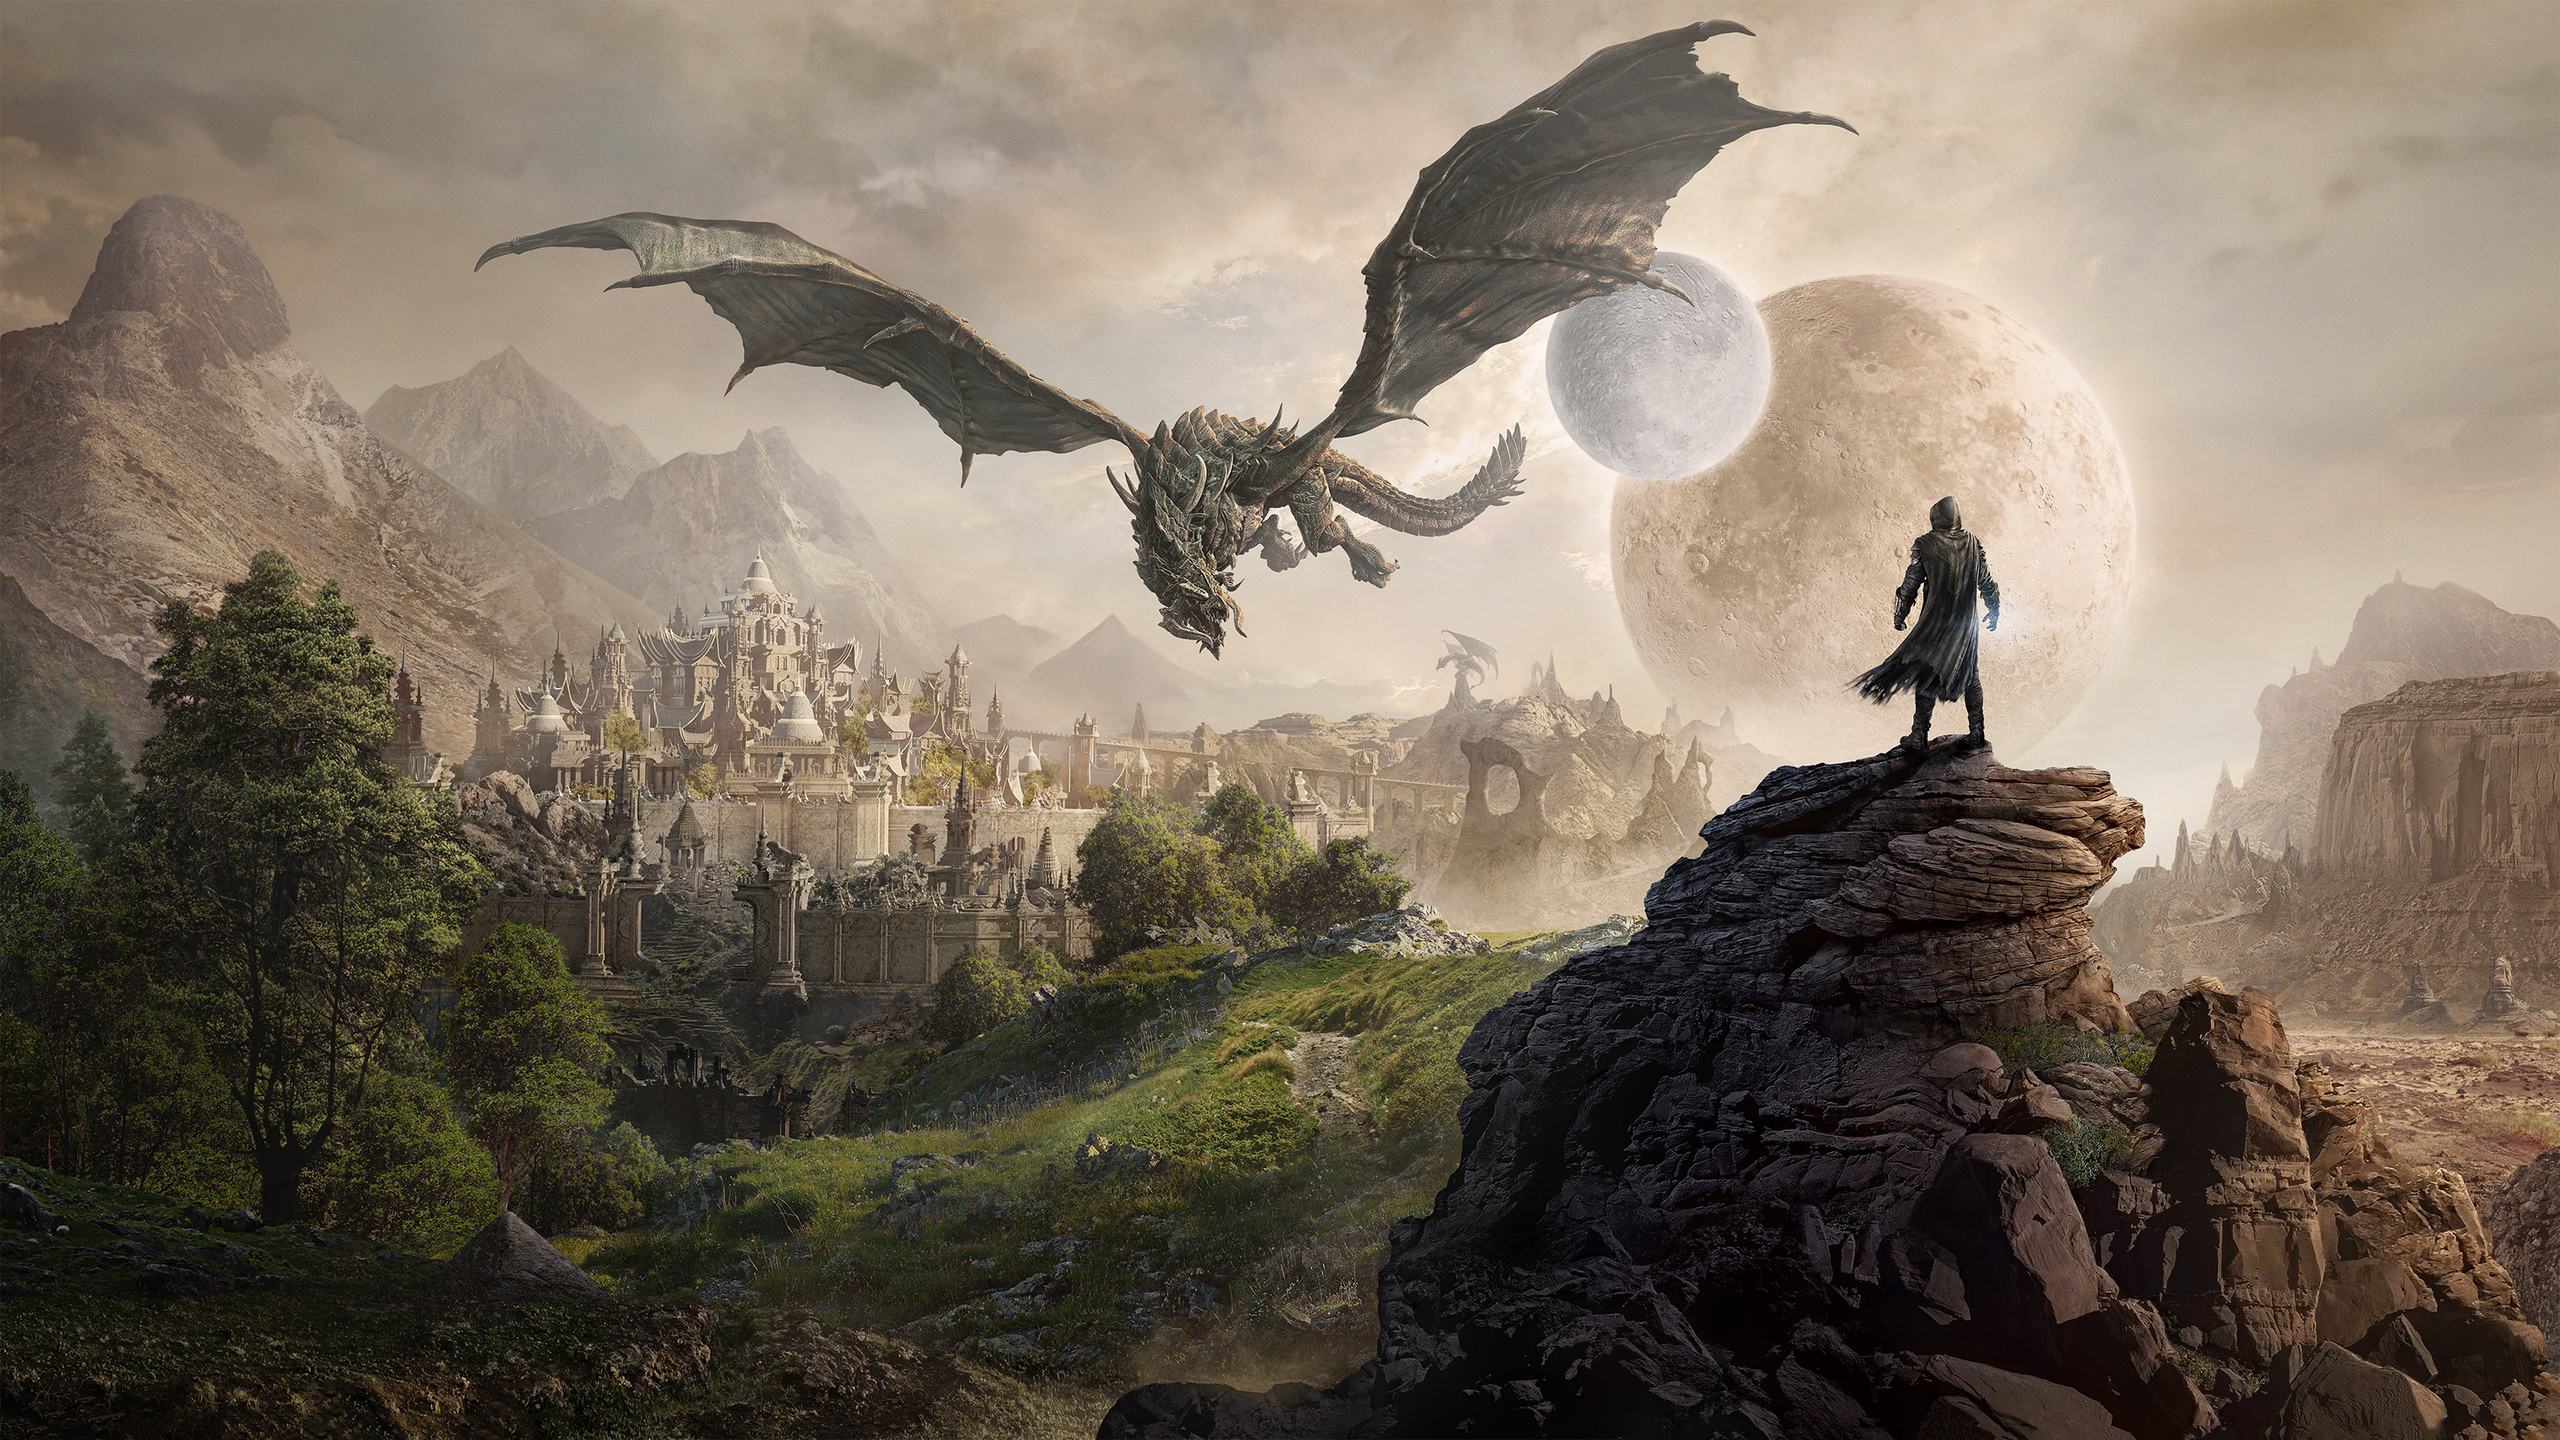 2560x1440 Elsweyr The Elder Scrolls Online 2019 4k 1440p Resolution Hd 4k Wallpapers Images Backgrounds Photos And Pictures